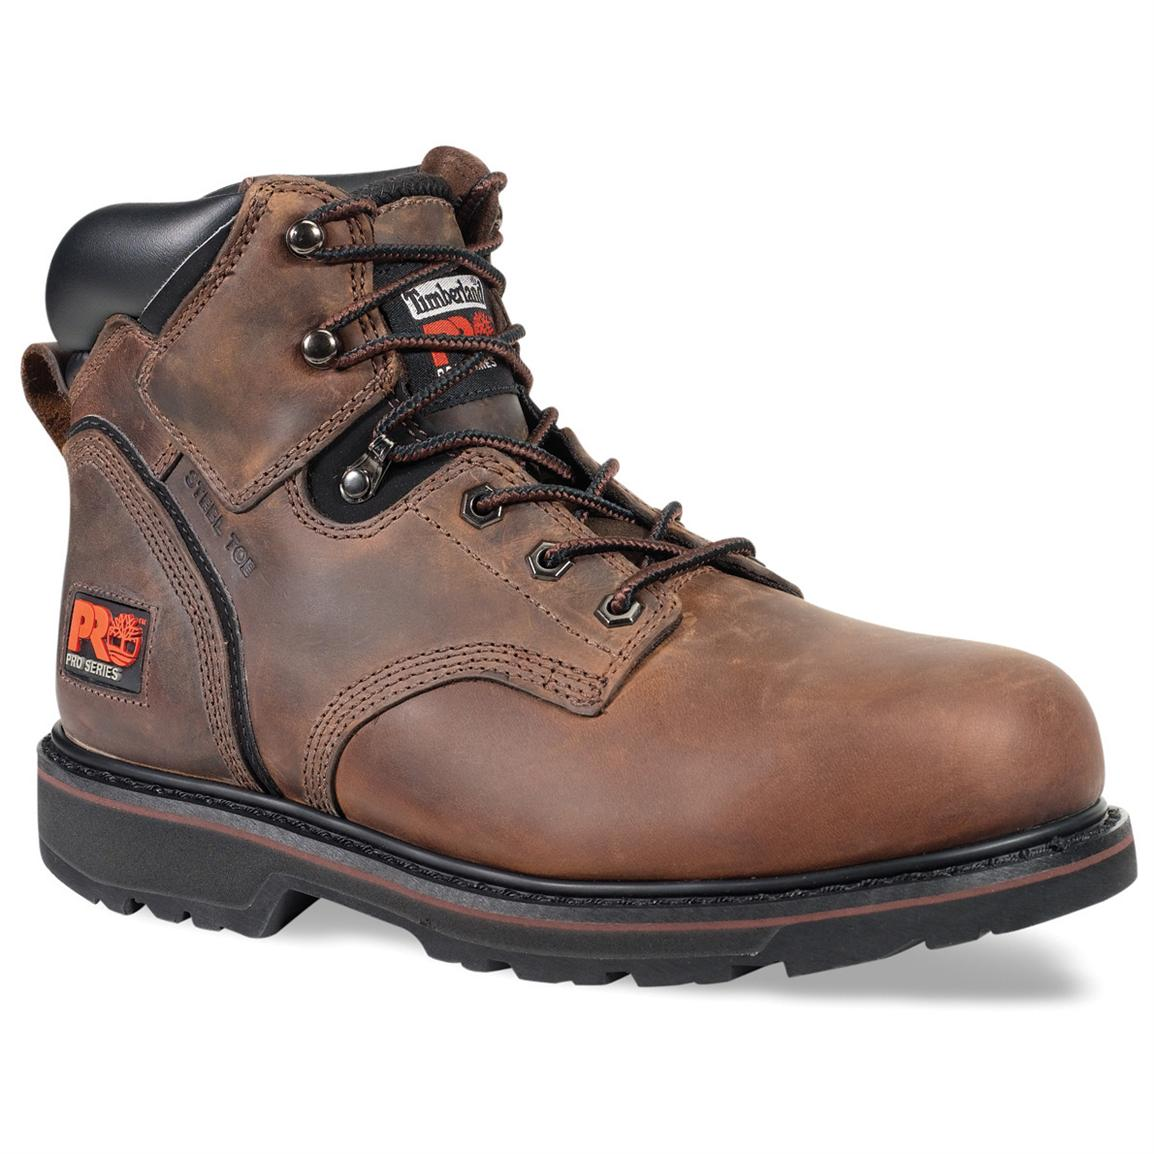 Men's 6 inch Timberland Pro® Pit Boss Steel Toe Boots, Gaucho